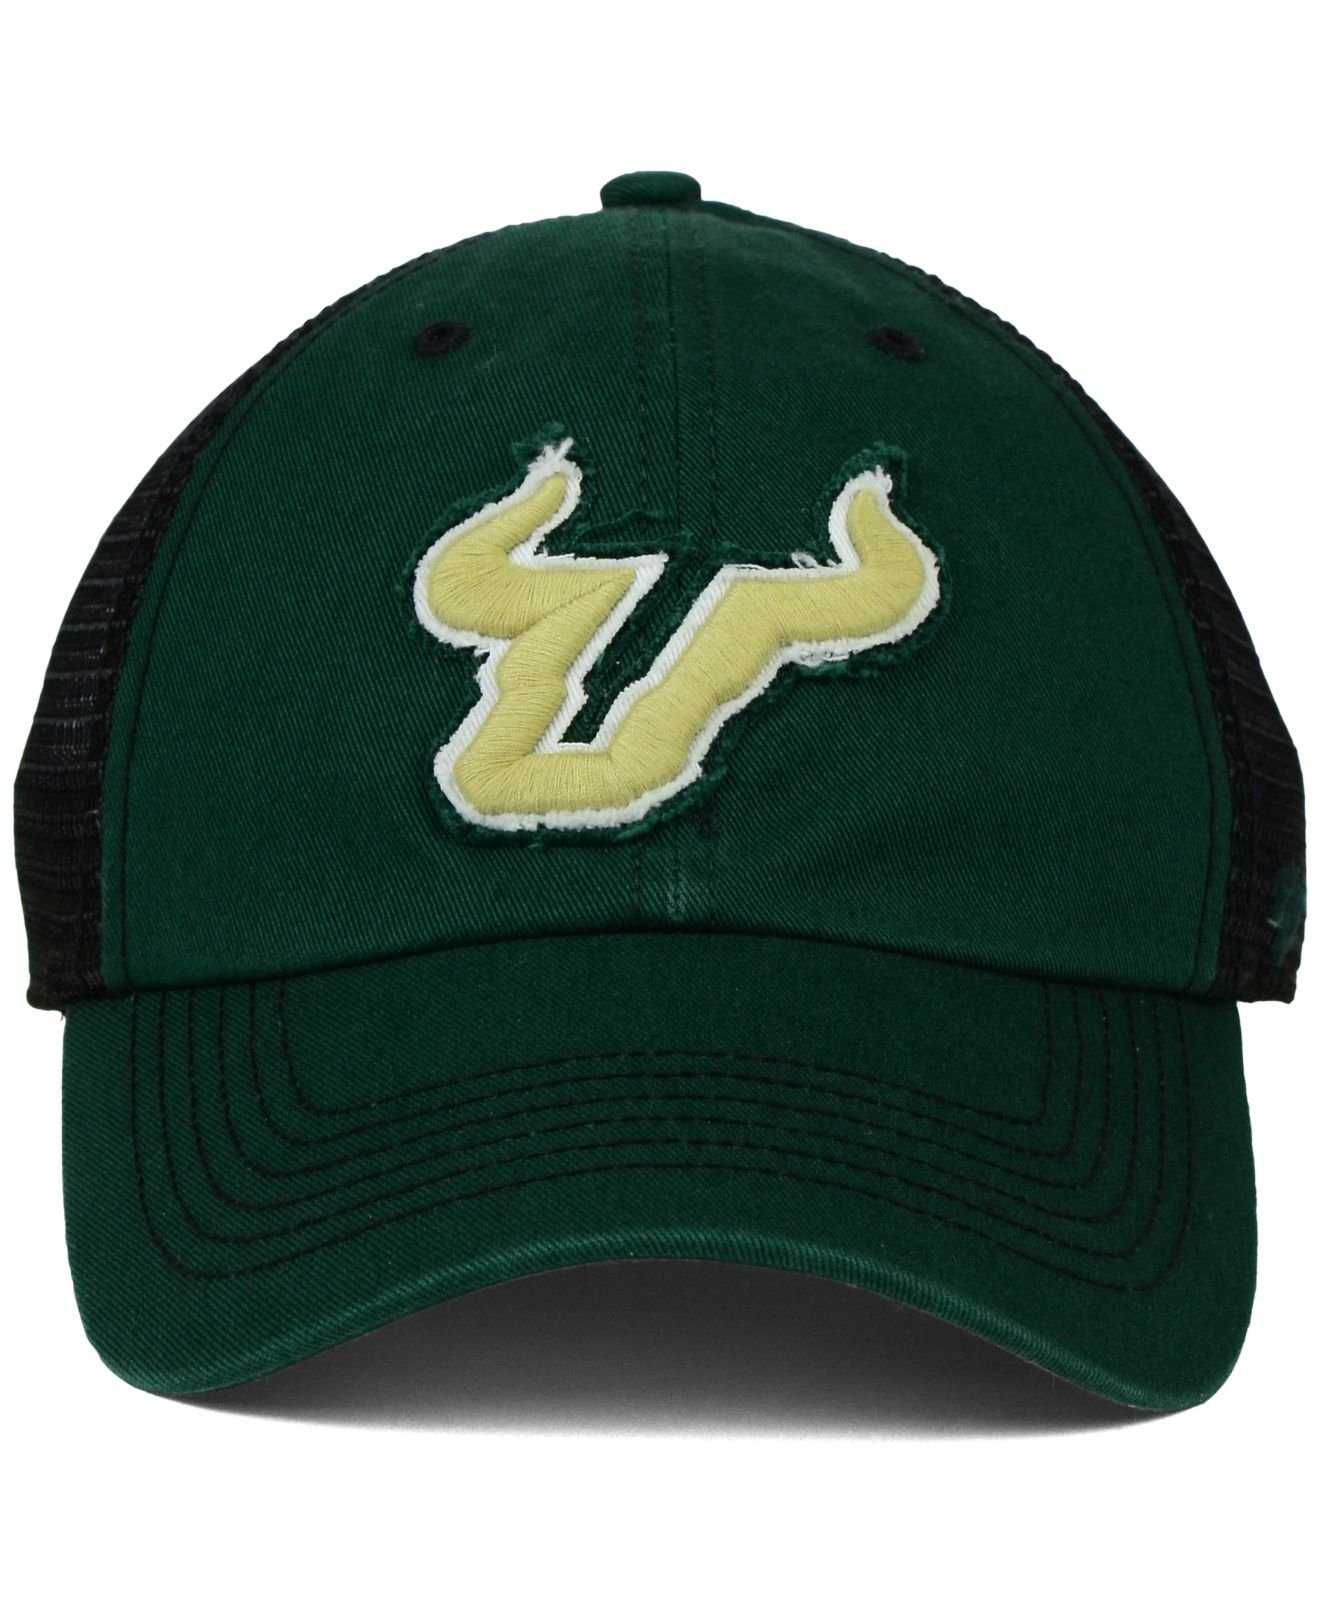 a956685c3f710 ... coupon lyst 47 brand south florida bulls taylor closer cap in green for  men 1585a b6ca6